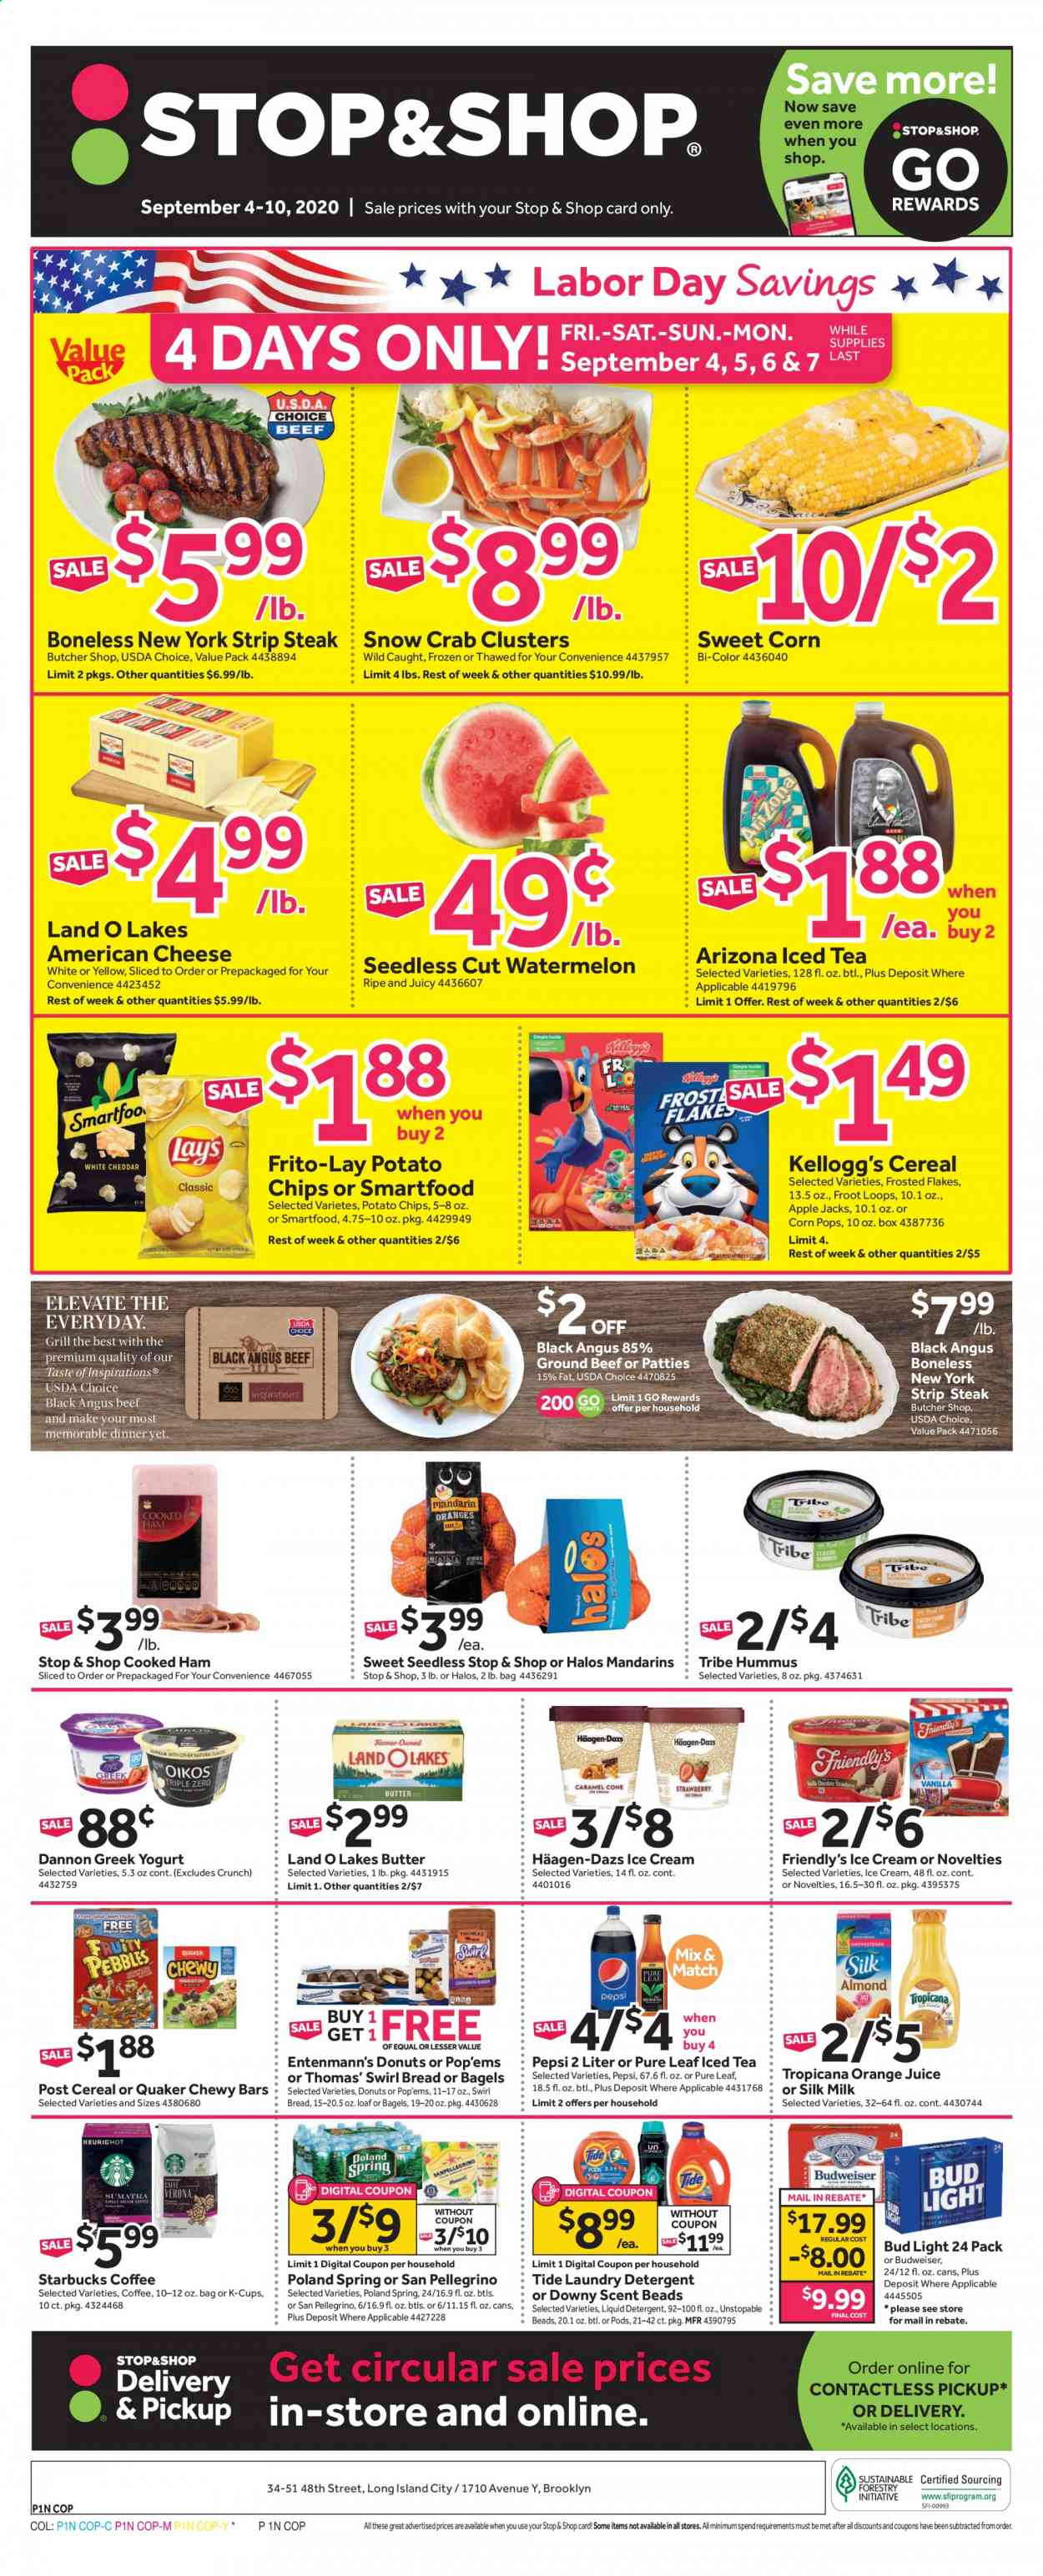 Stop & Shop Flyer - 09.04.2020 - 09.10.2020 - Sales products - bread, bagels, donut, Entenmann's, beef meat, ground beef, steak, striploin steak, crab, Quaker, cooked ham, ham, hummus, american cheese, cheese, greek yoghurt, yoghurt, Dannon, milk, Silk, butter, ice cream, Häagen-Dazs, Friendly's Ice Cream, sweet corn, Kellogg's, potato chips, Smartfood, Frito-Lay, mandarines, cereals, Frosted Flakes, Corn Pops, Pepsi, orange juice, juice, AriZona, Pure Leaf, Starbucks, coffee capsules, K-Cups, beer, Budweiser, Bud Light, Downy, Tide, laundry detergent, liquid detergent. Page 1.